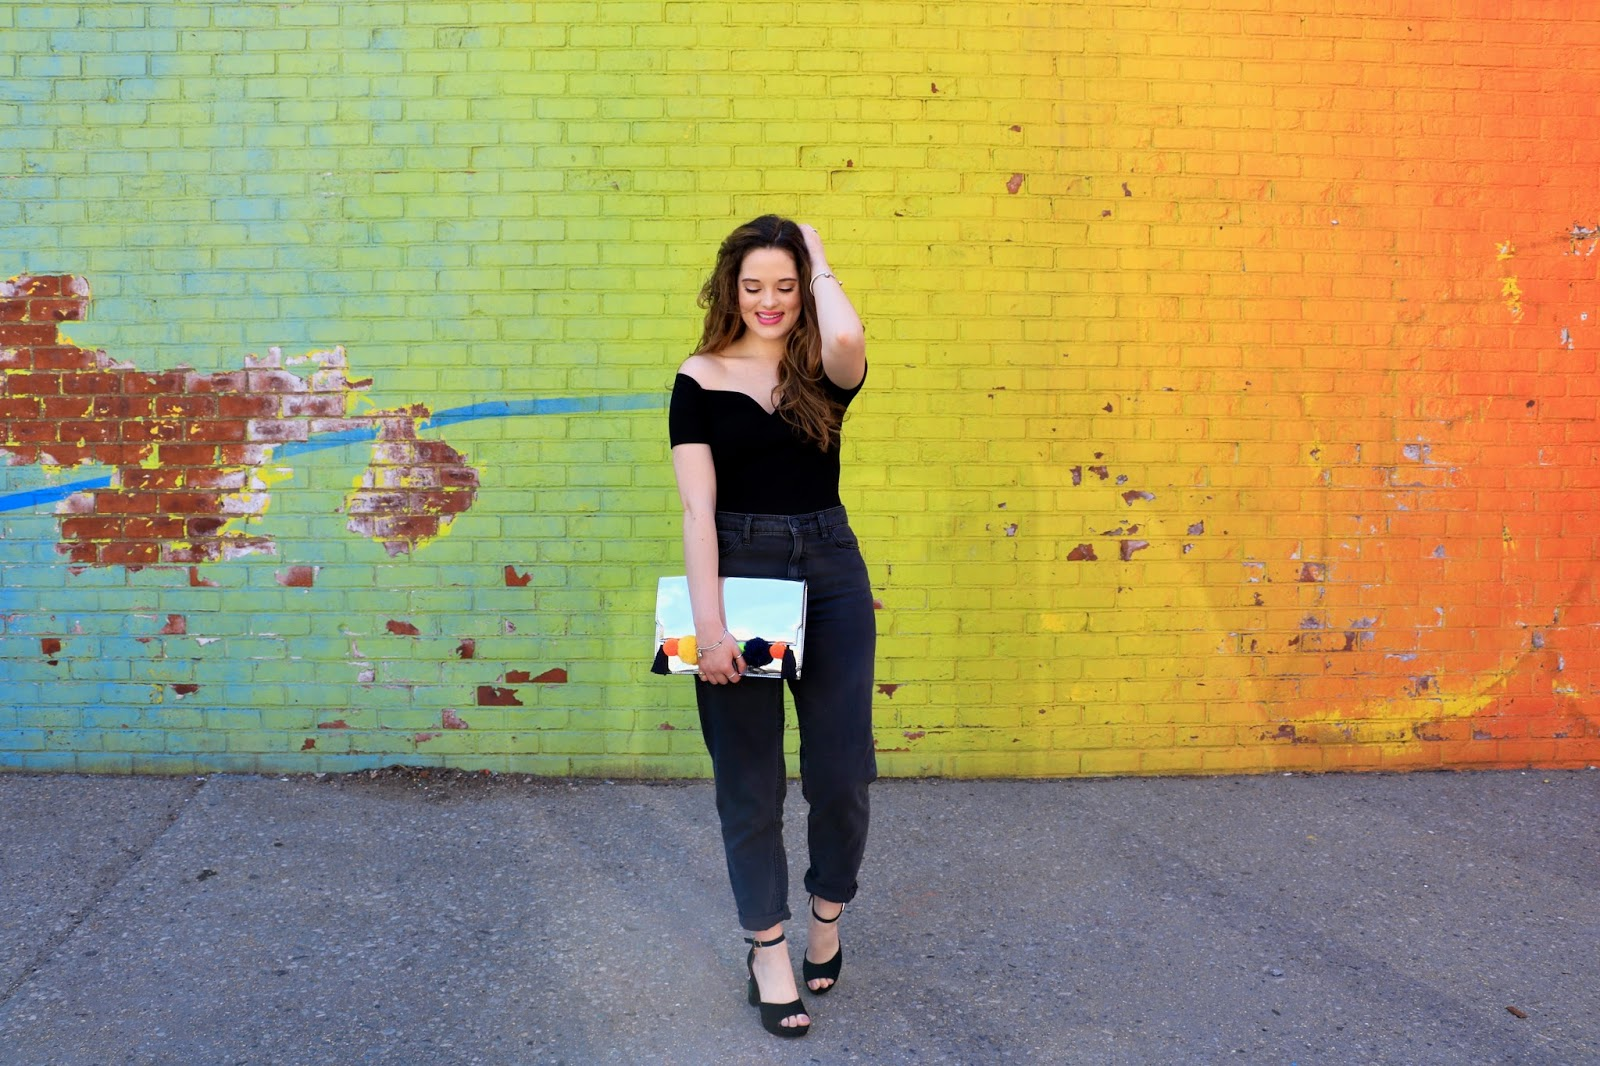 Fashion blogger Kathleen Harper wearing all black outfit in NYC